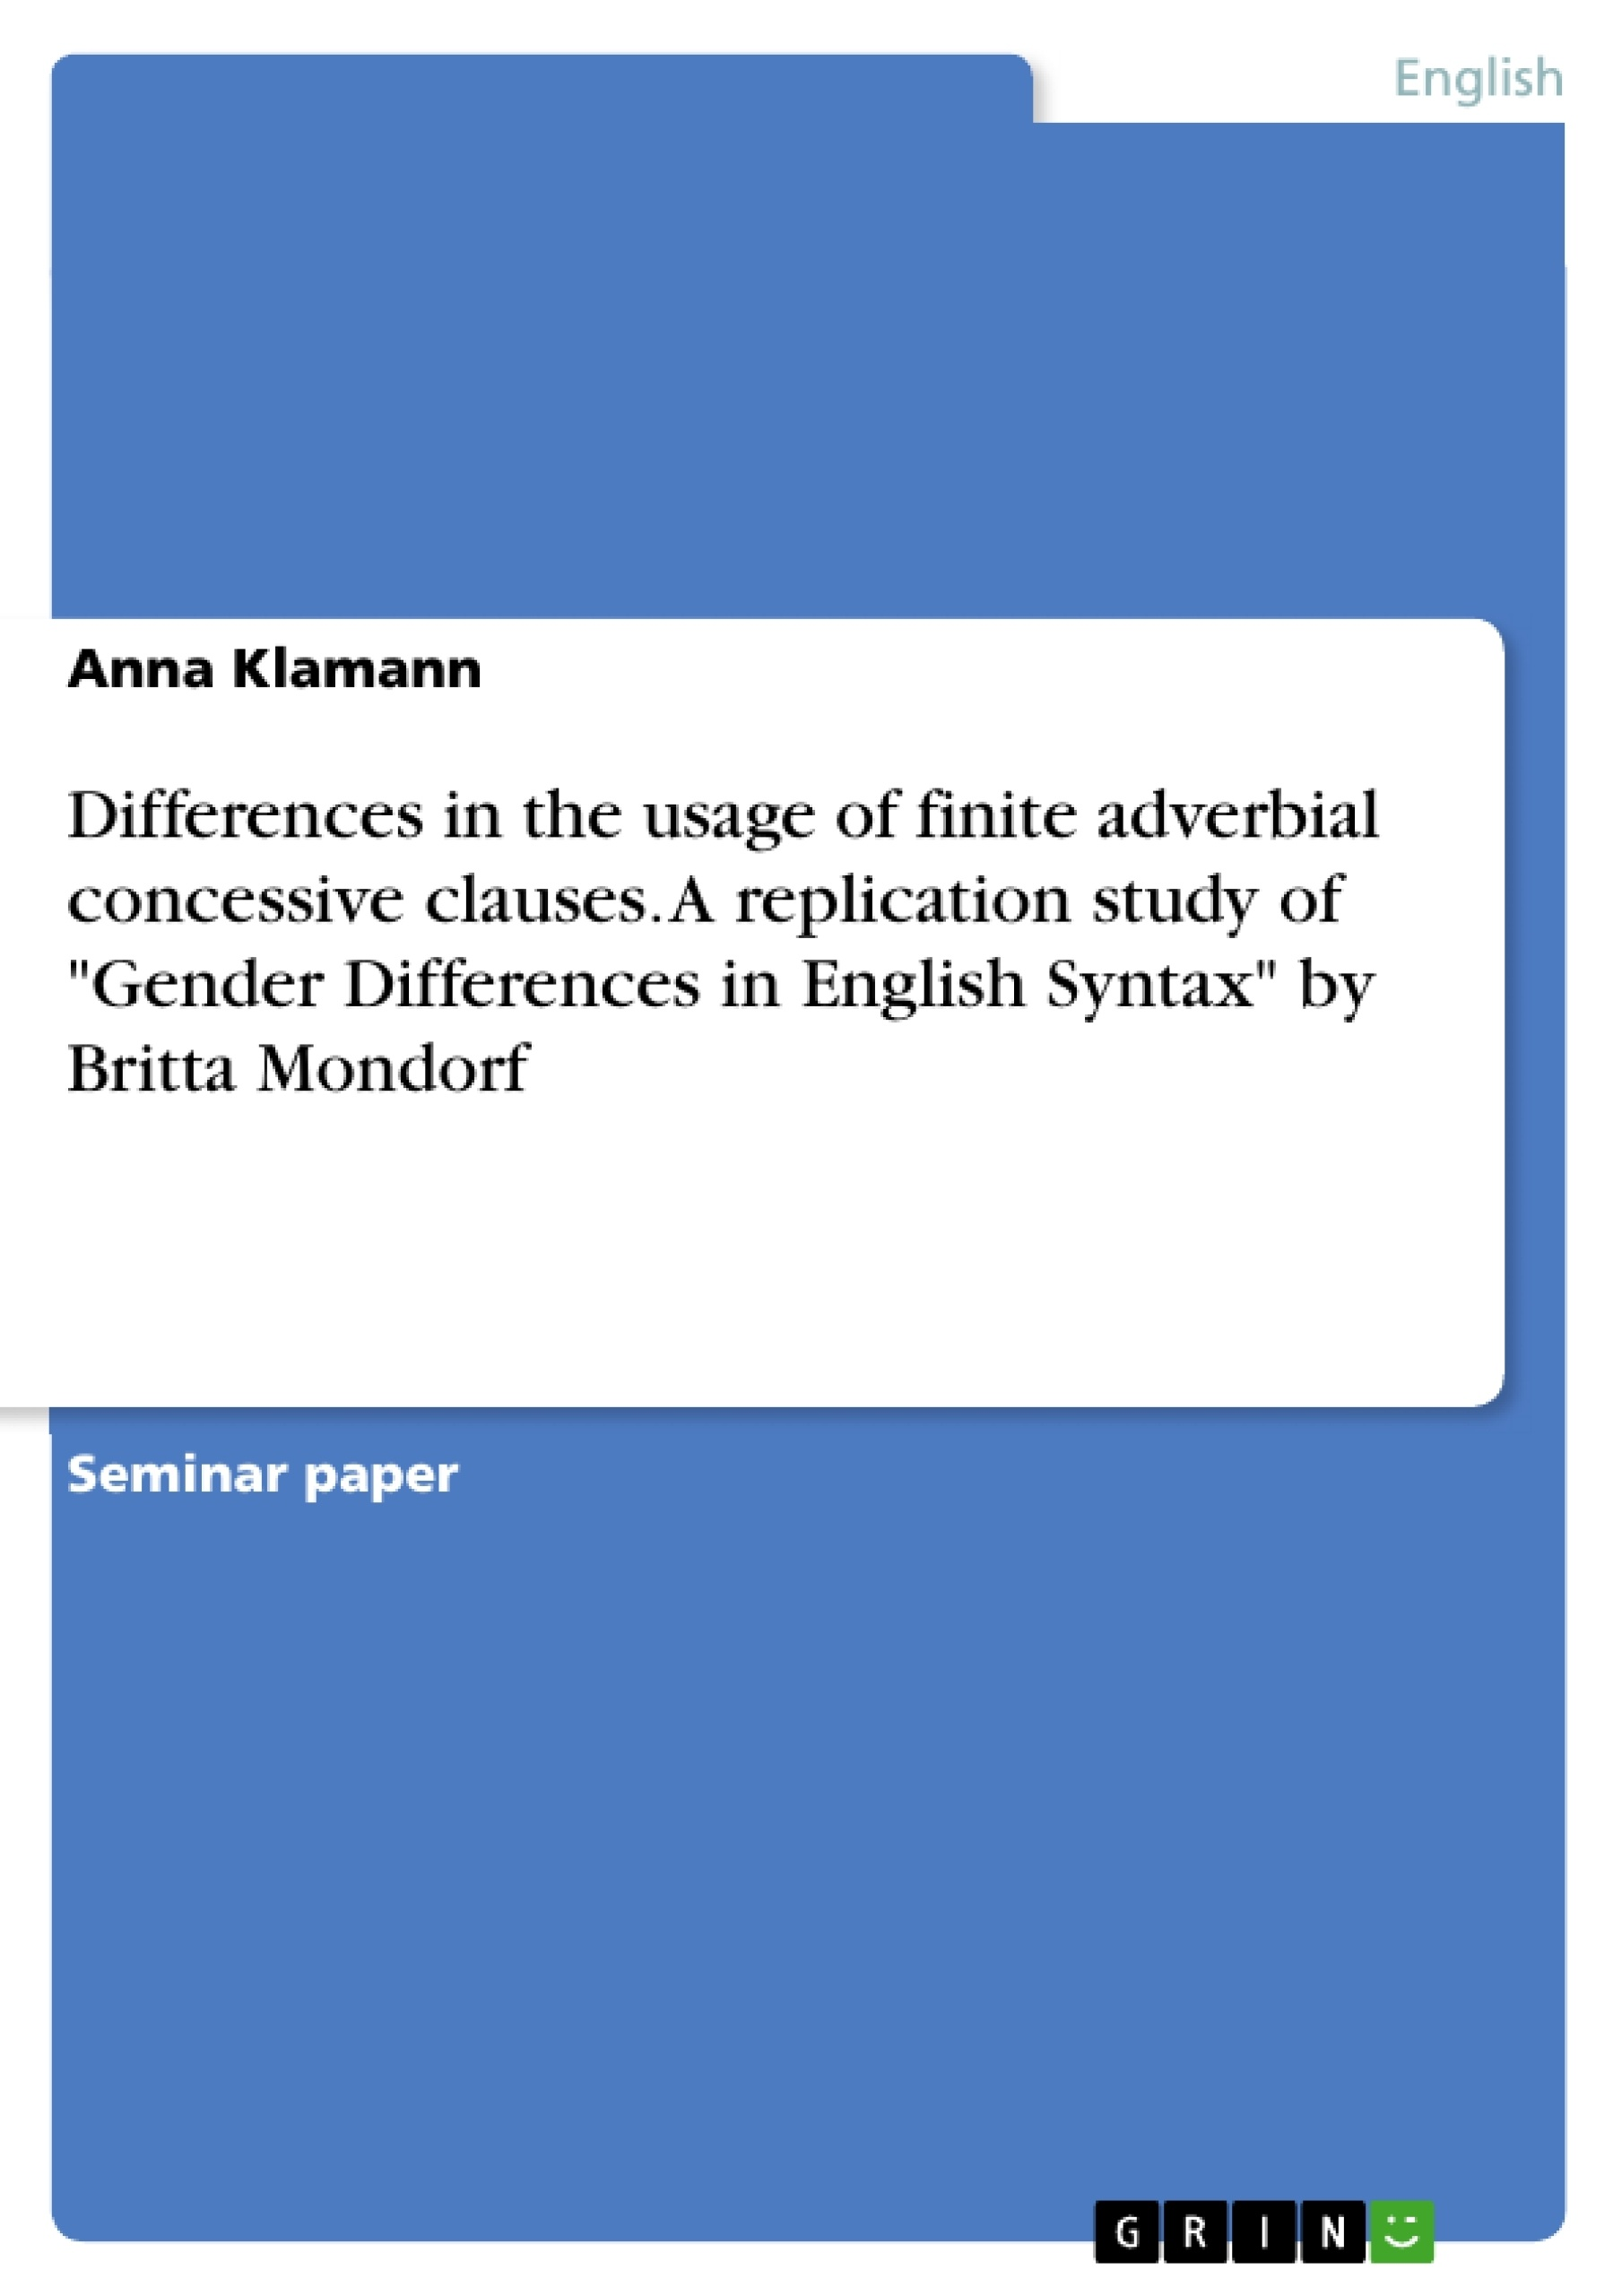 """Title: Differences in the usage of finite adverbial concessive clauses. A replication study of """"Gender Differences in English Syntax"""" by Britta Mondorf"""